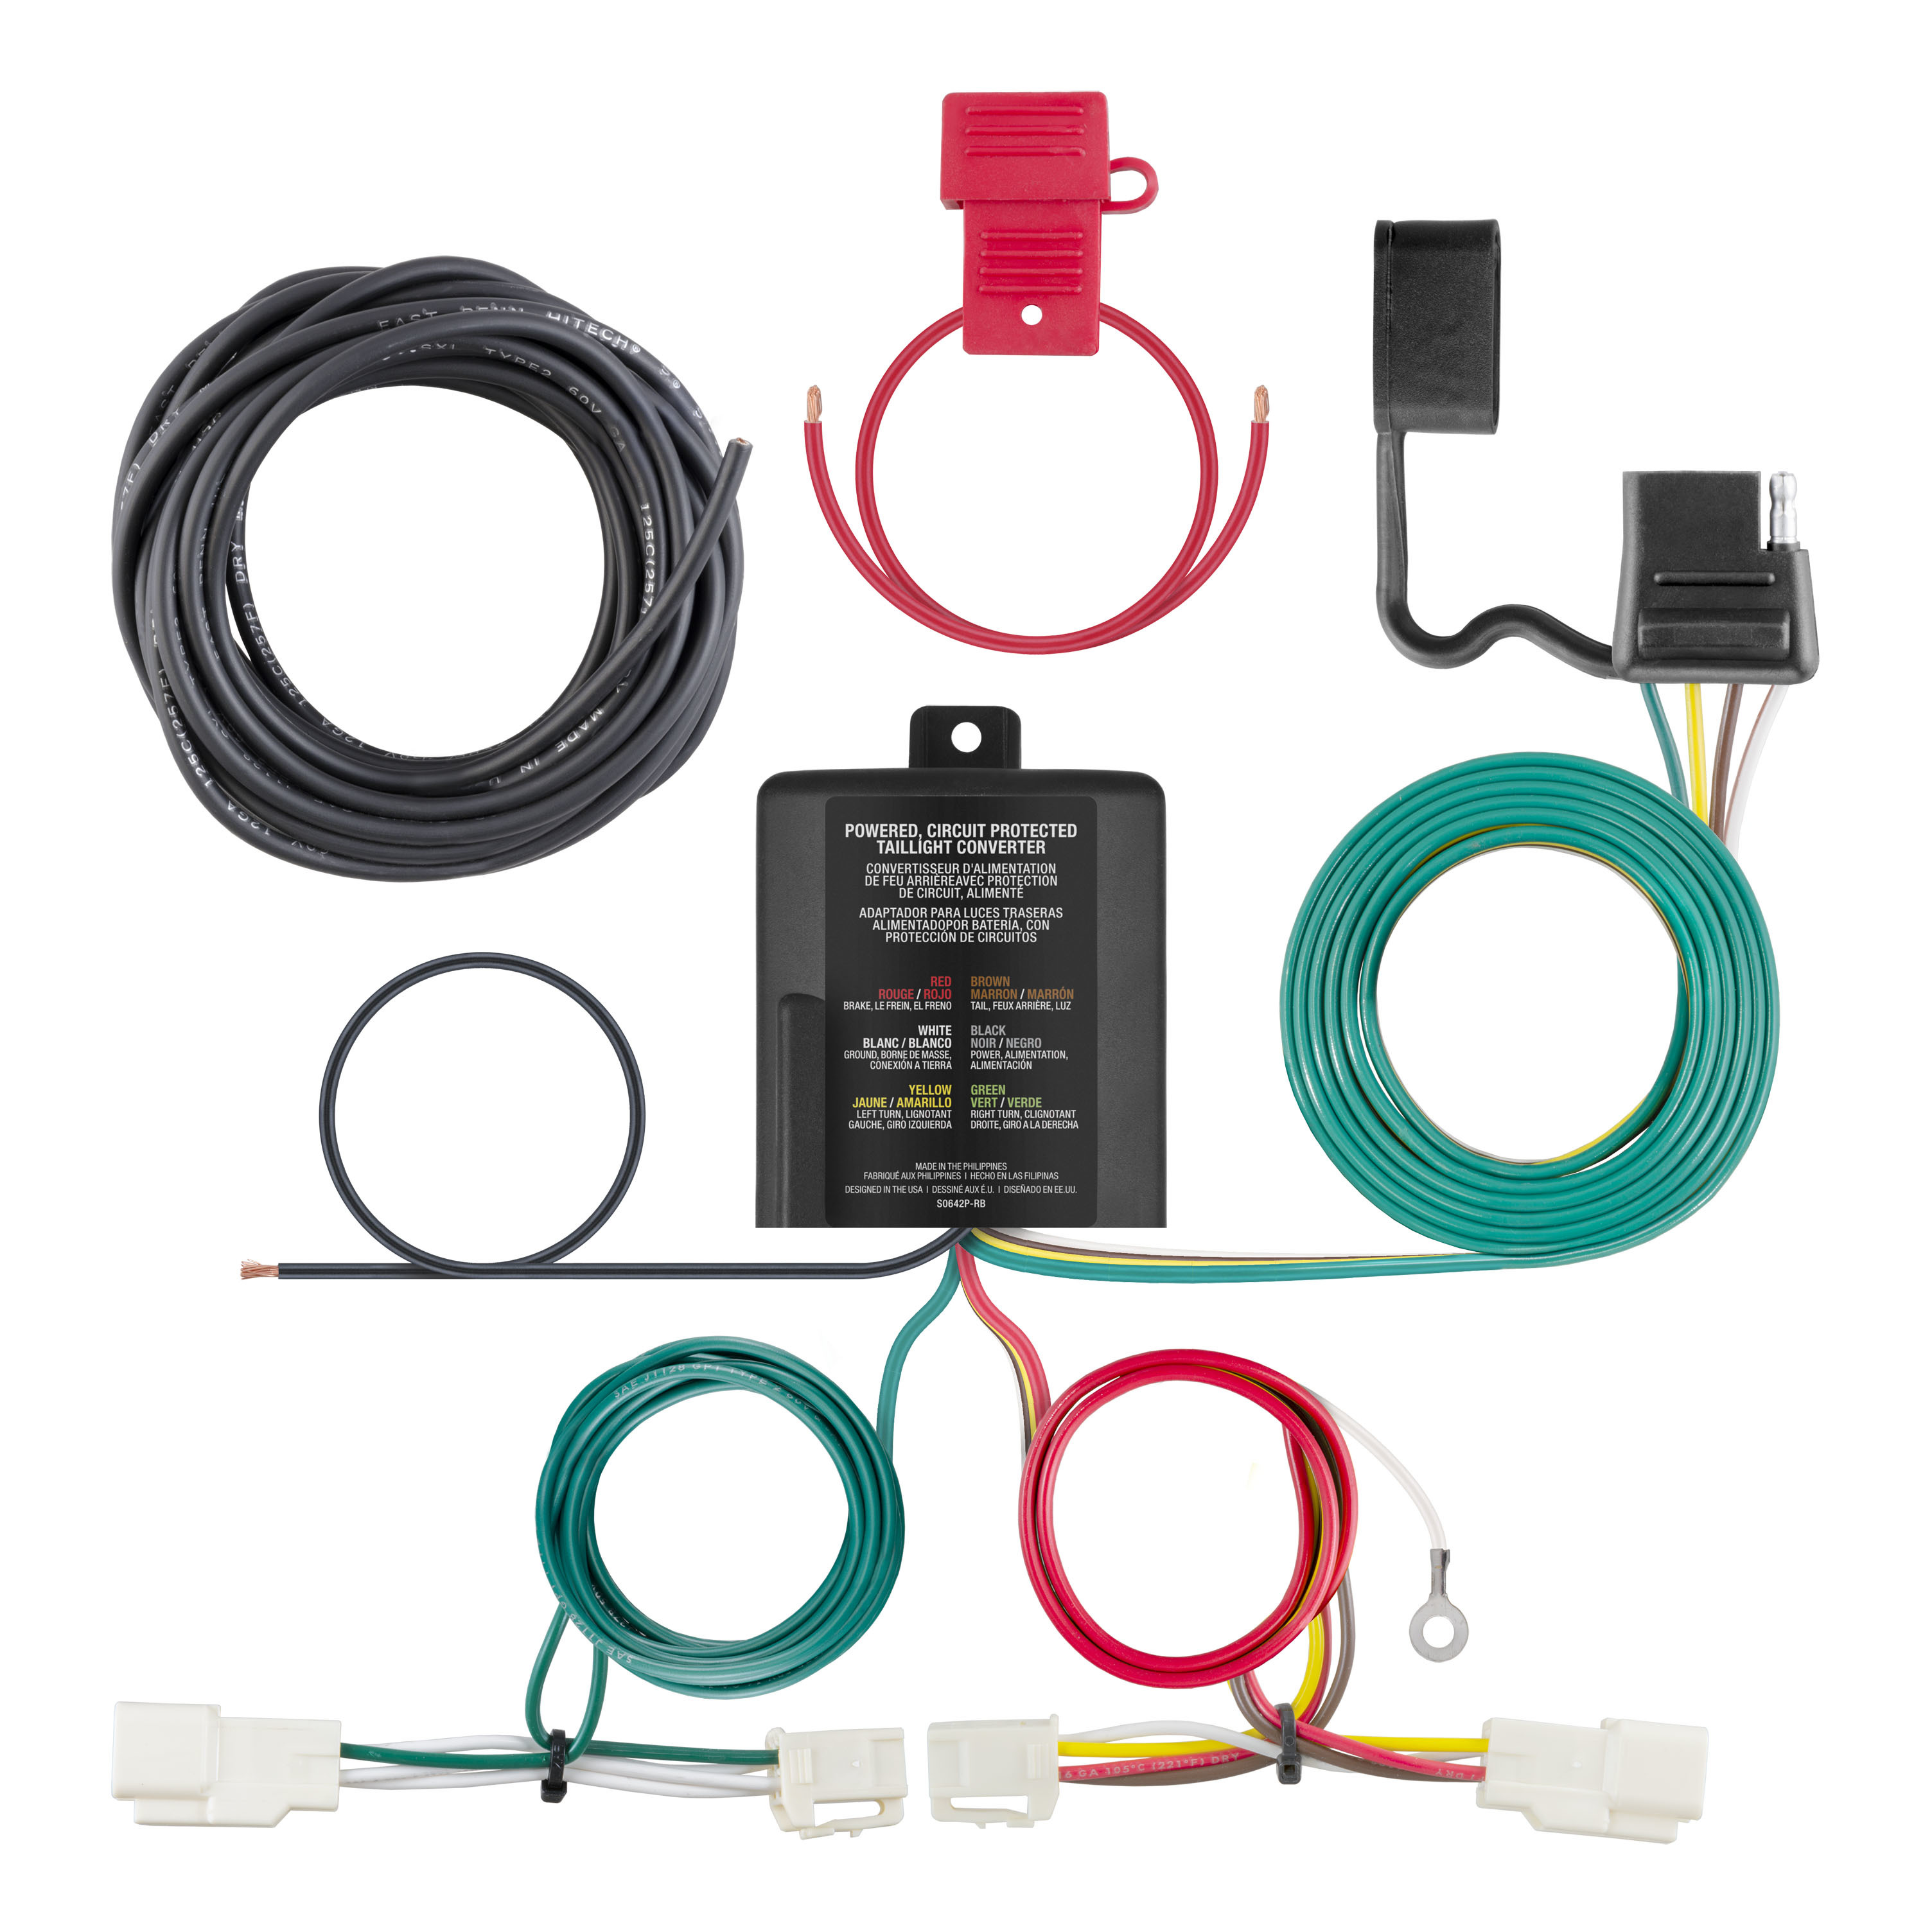 T Connector Trailer Wiring Harness - Today Wiring Diagram on t connector for trailer lights, t connector fuel line, t connector hose, t connector battery, t one wiring harness, t connector electrical, 1998 ford f-150 tow harness,